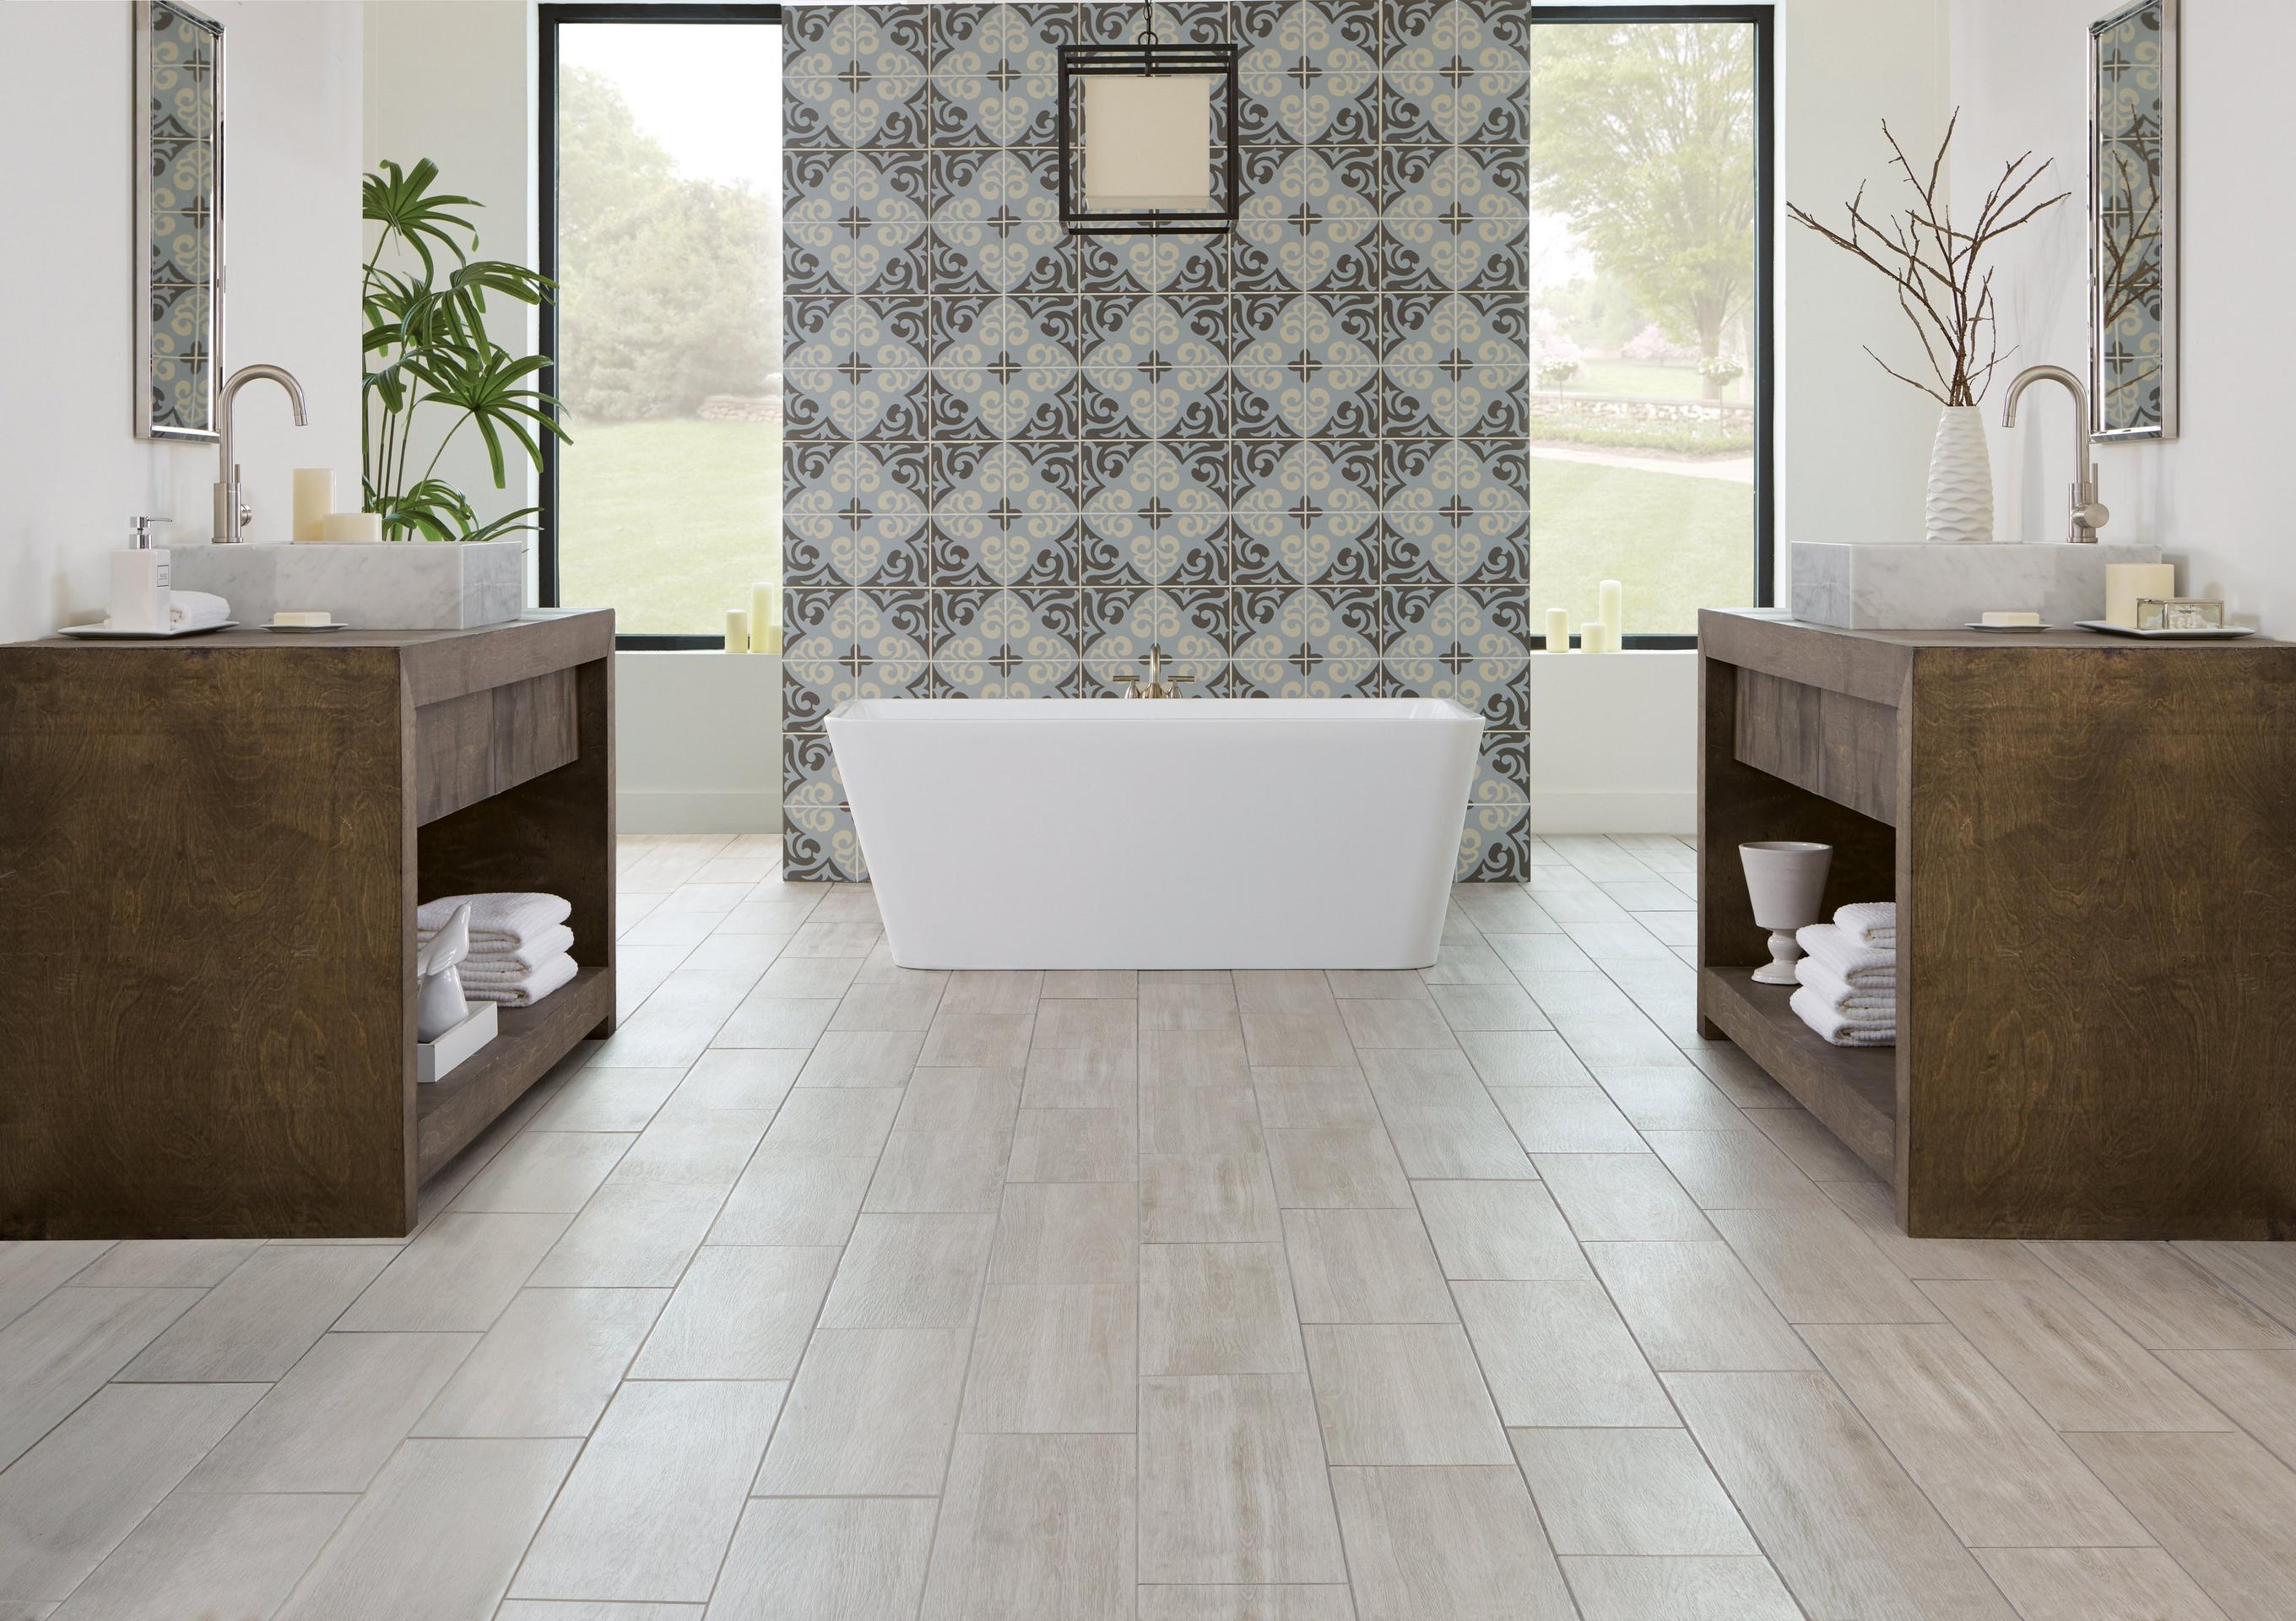 Bathroom gallery floor decor view details dailygadgetfo Image collections